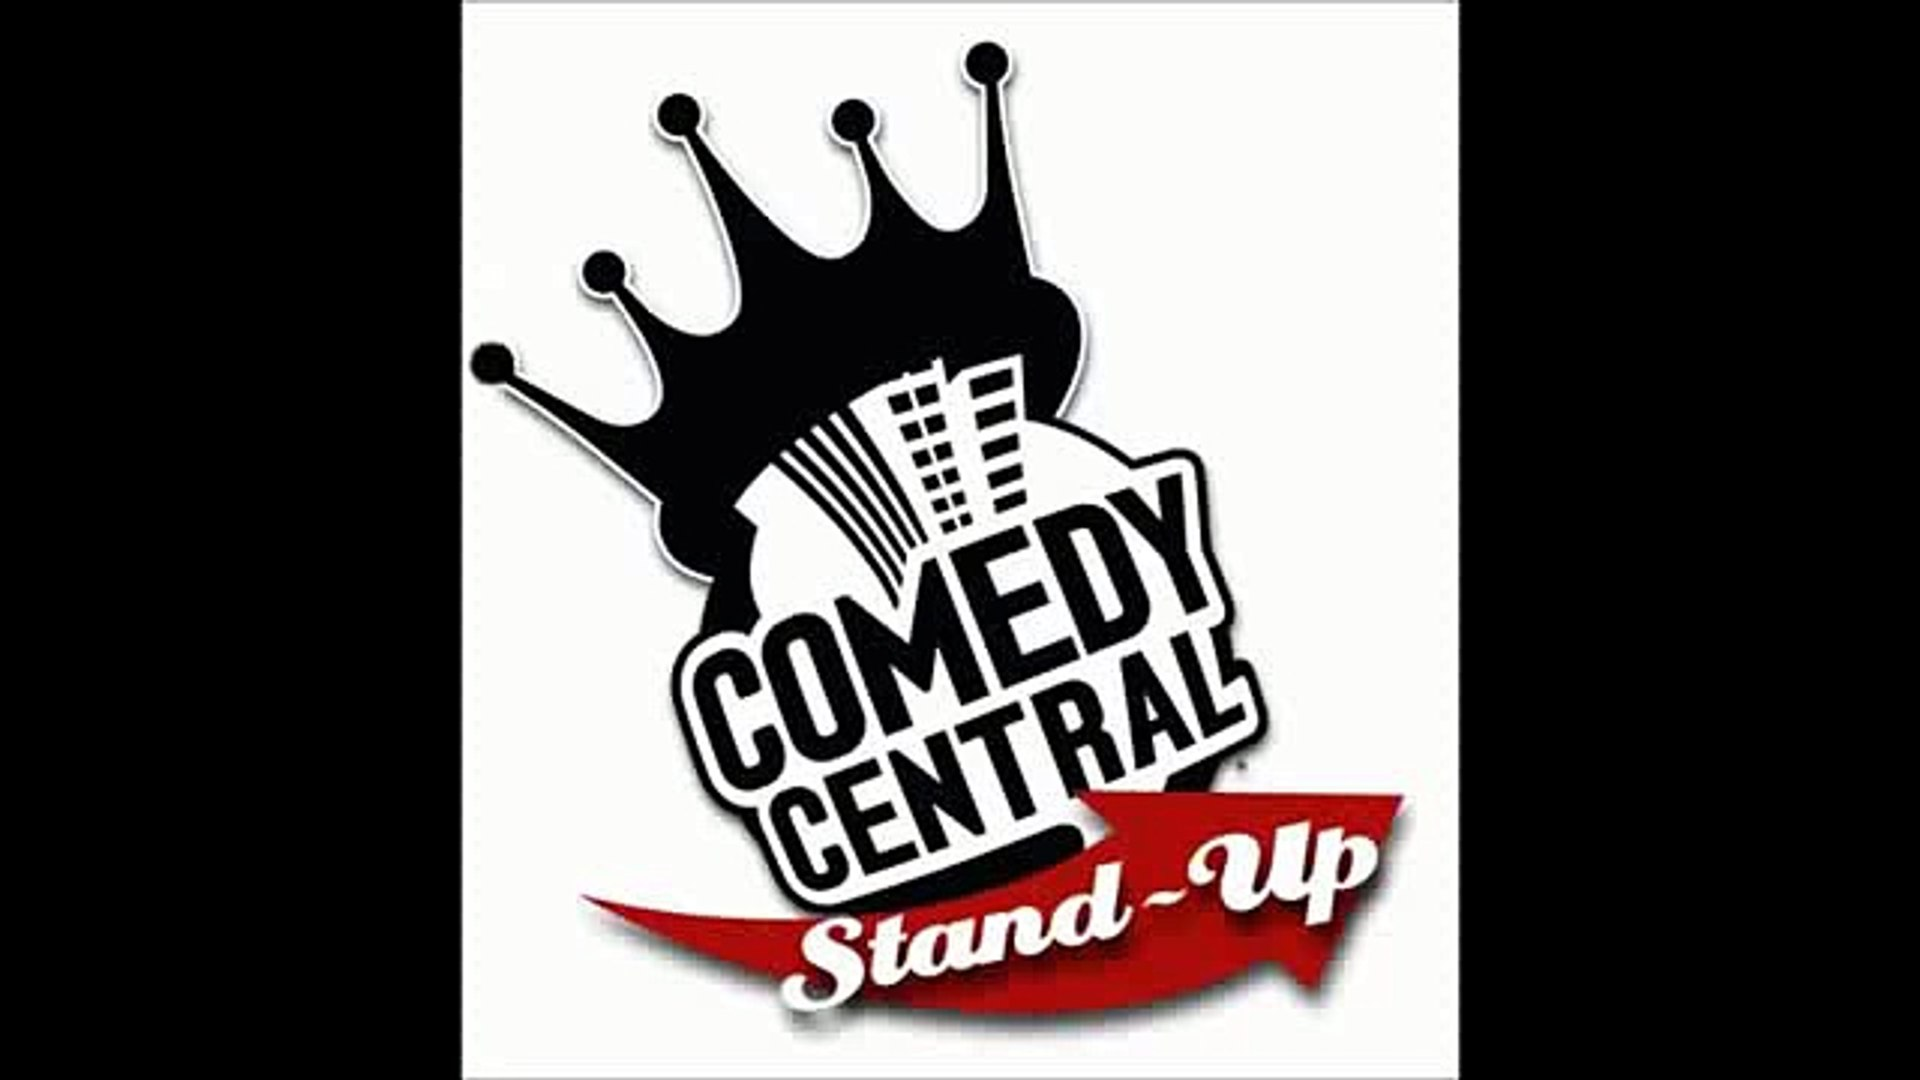 Comedy Central Presents Kevin James Standup Comedy Audio